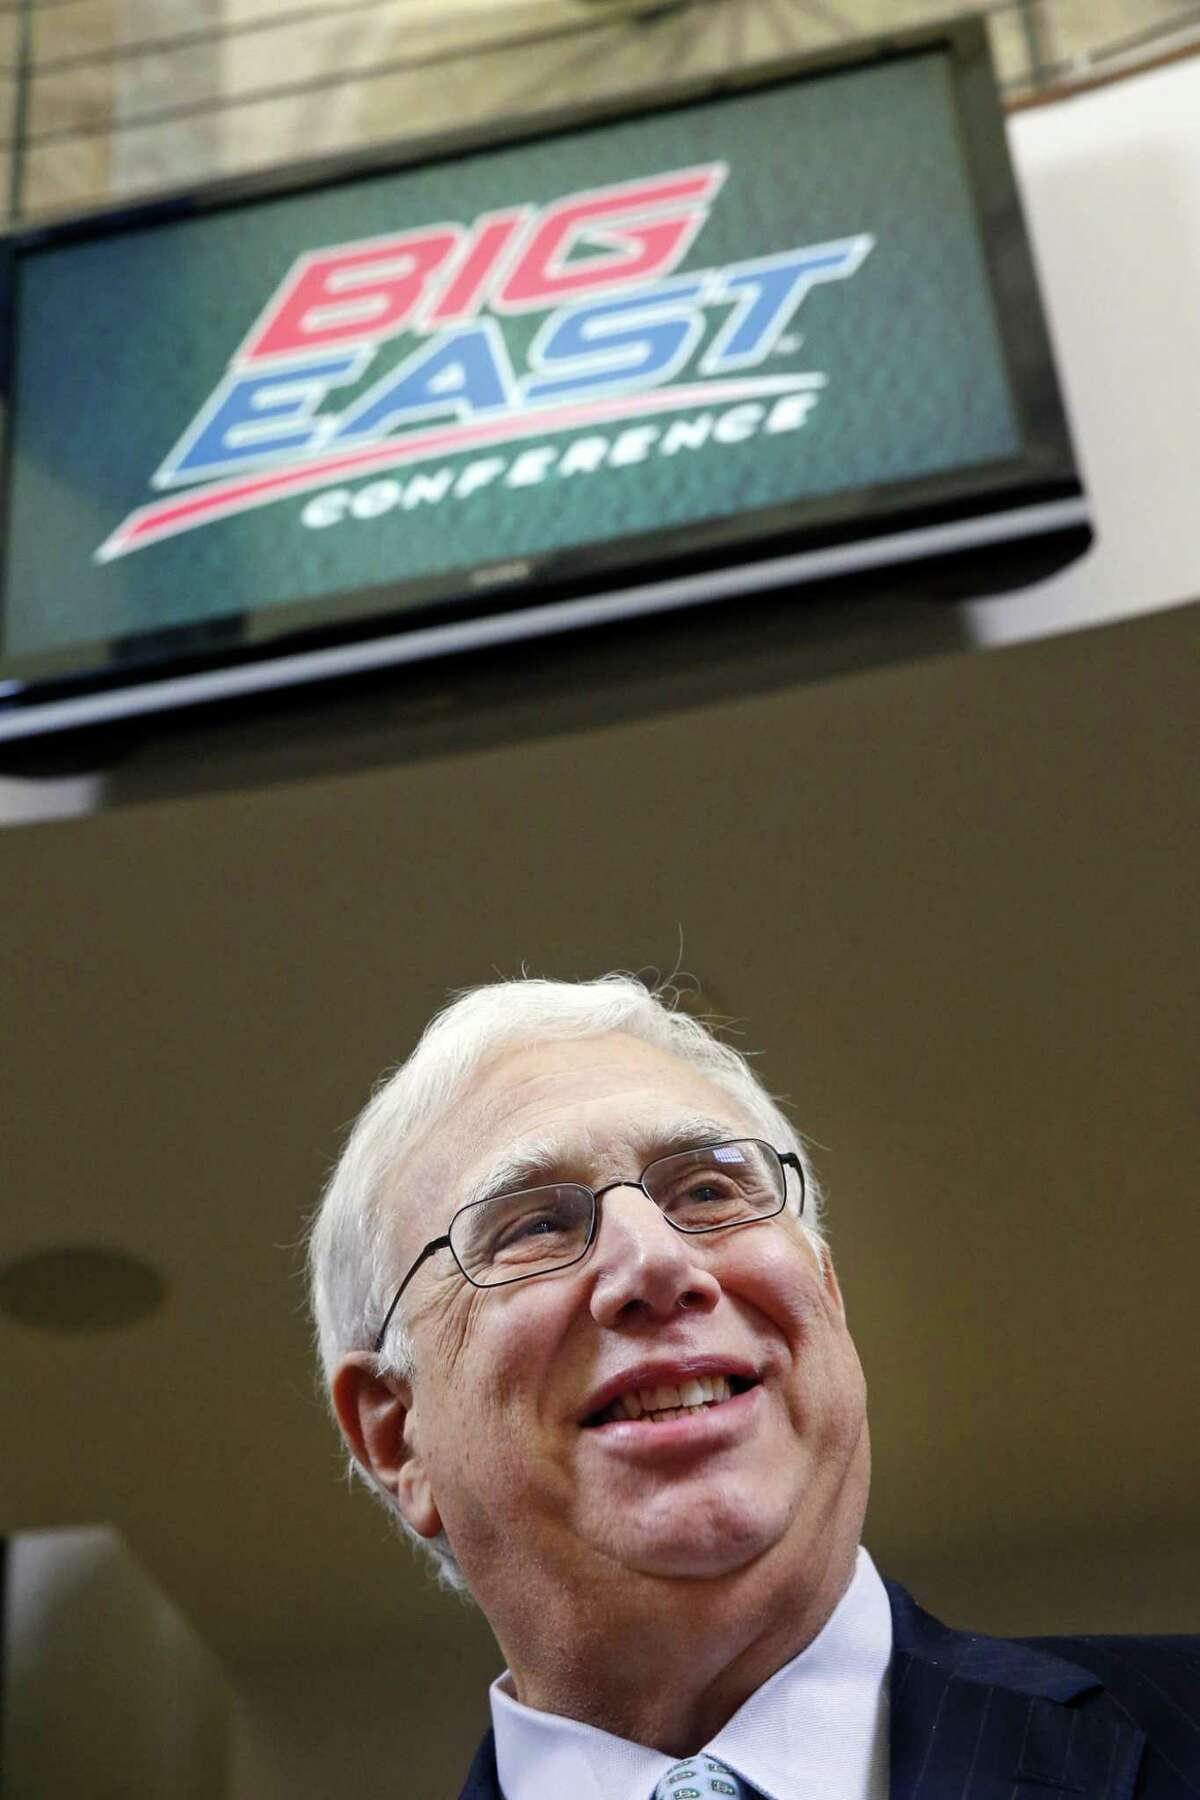 Tulane President Scott Cowen speaks during a news conference in New Orleans, Tuesday, Nov 27. By The Associated Press